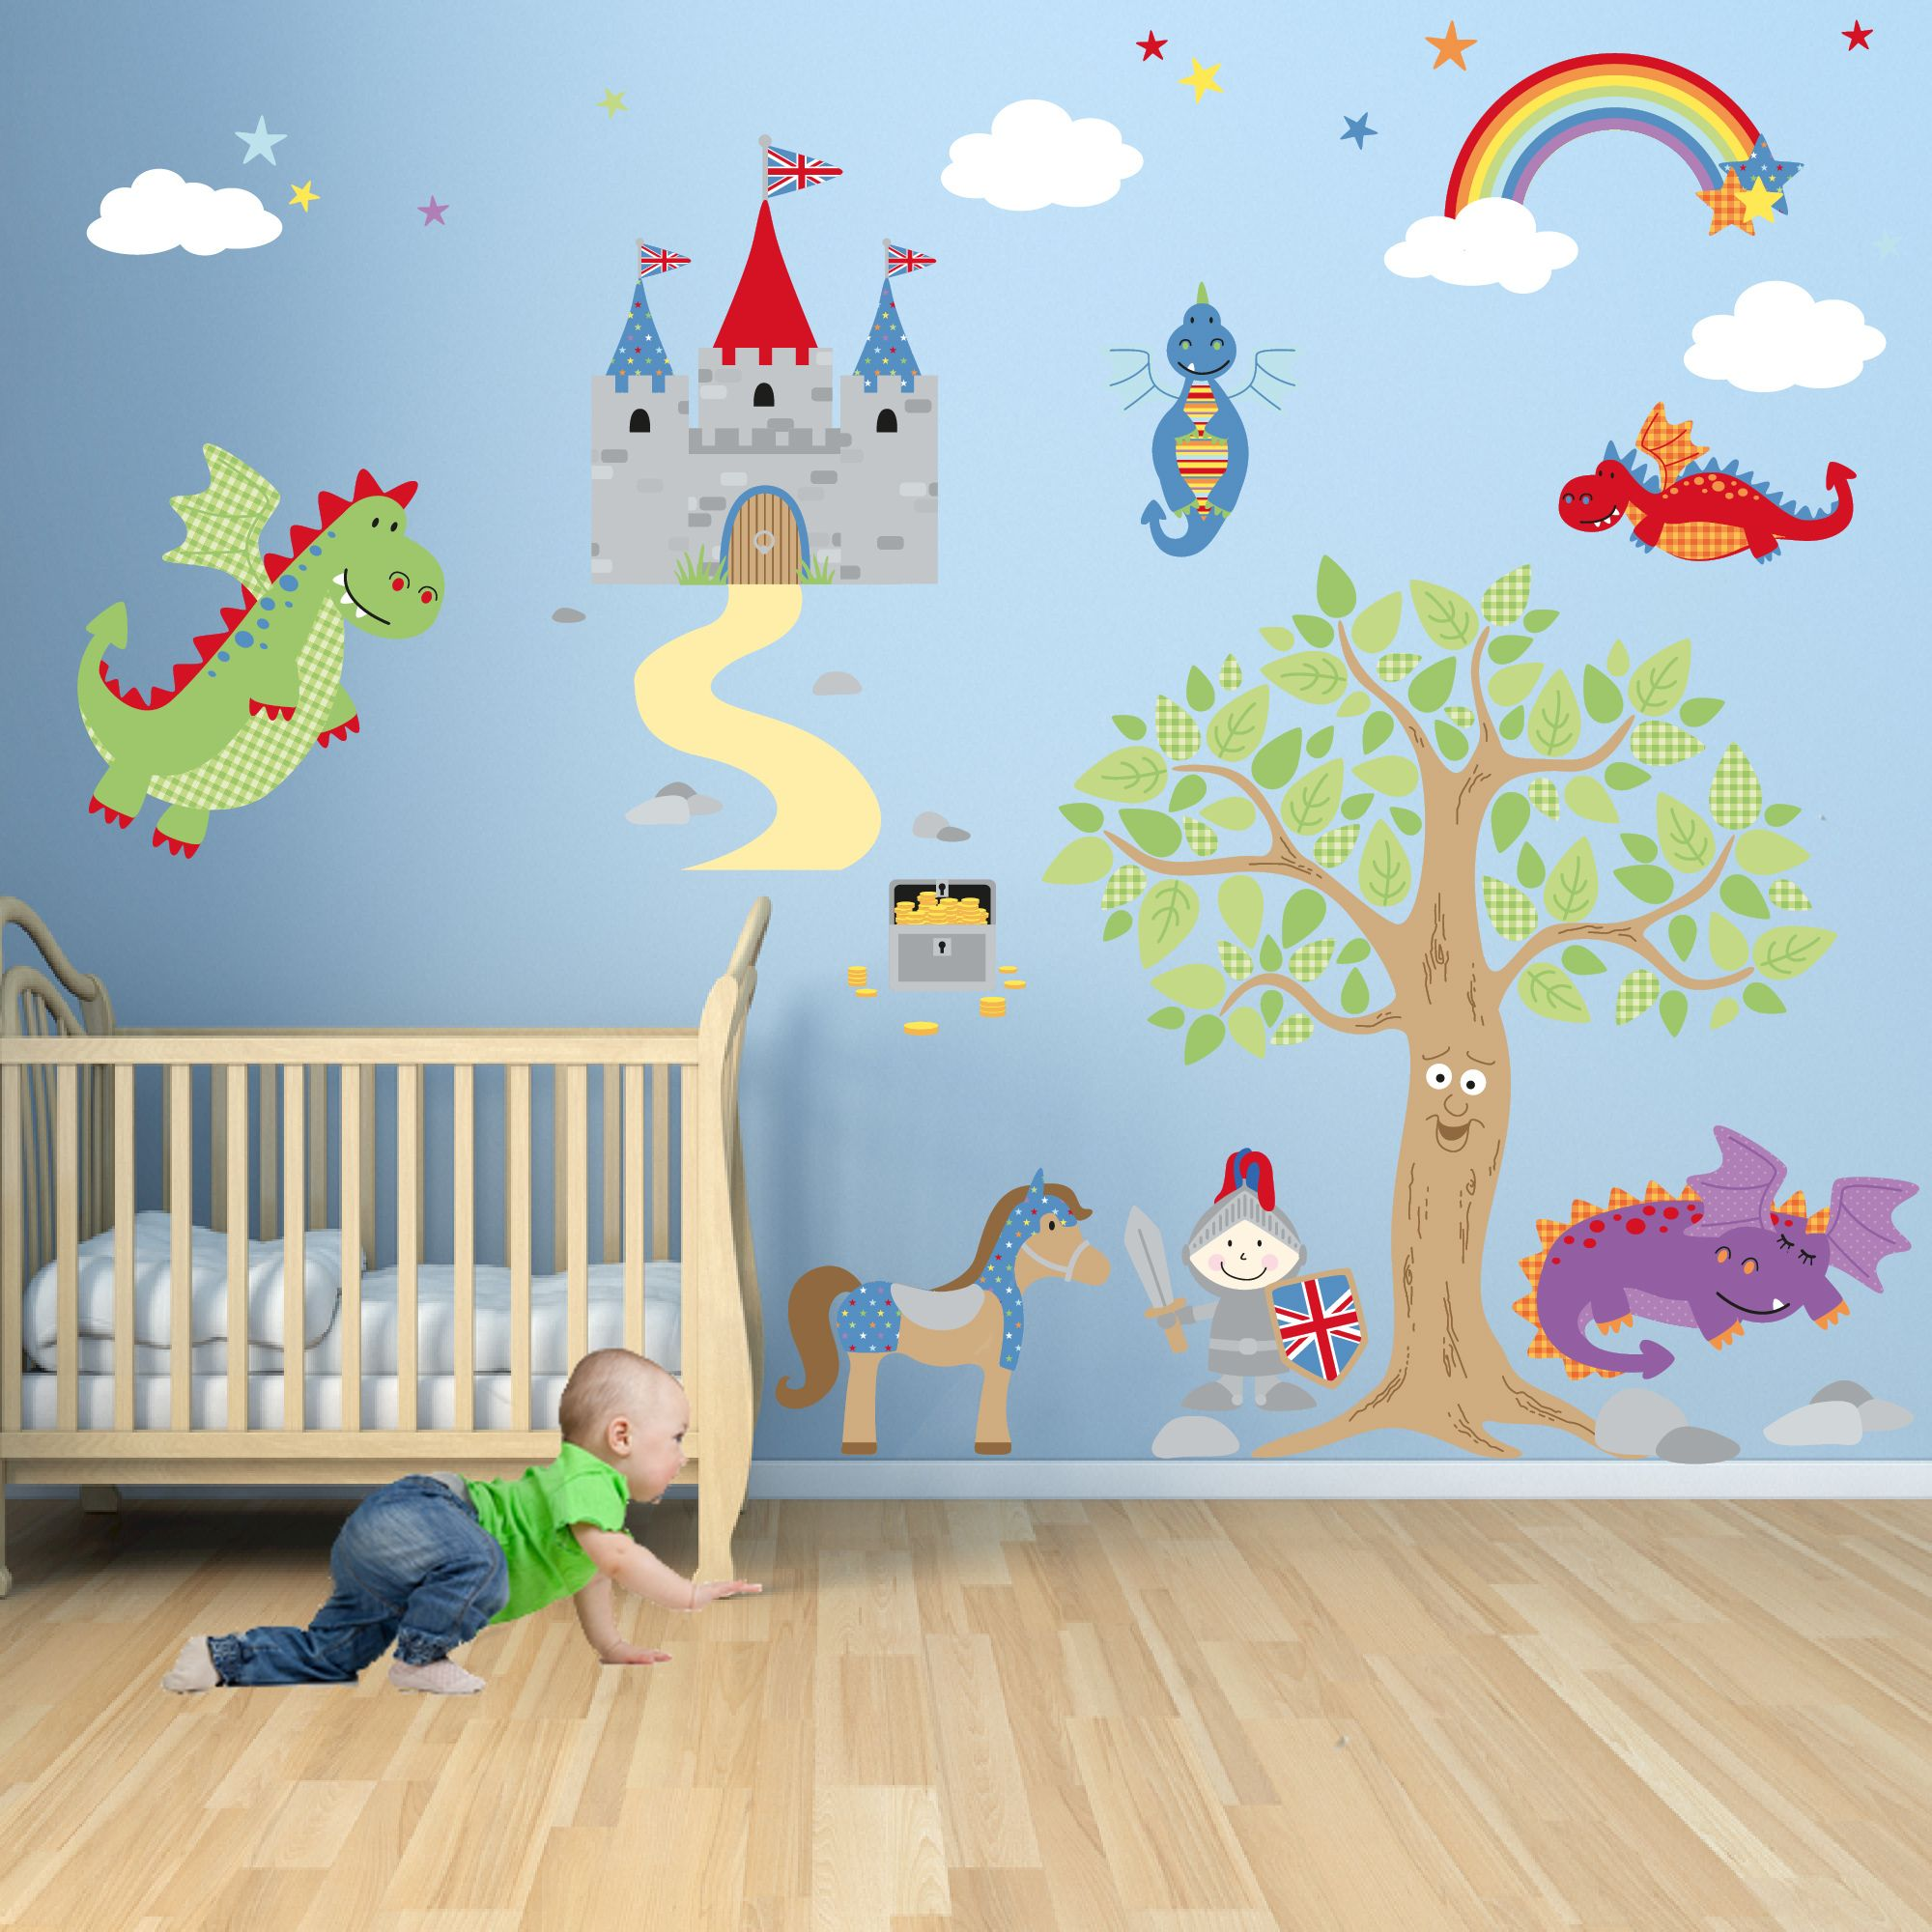 Baby boy room decor stickers - Enchanted Royal Knights And Dragons Nursery Wall Stickers